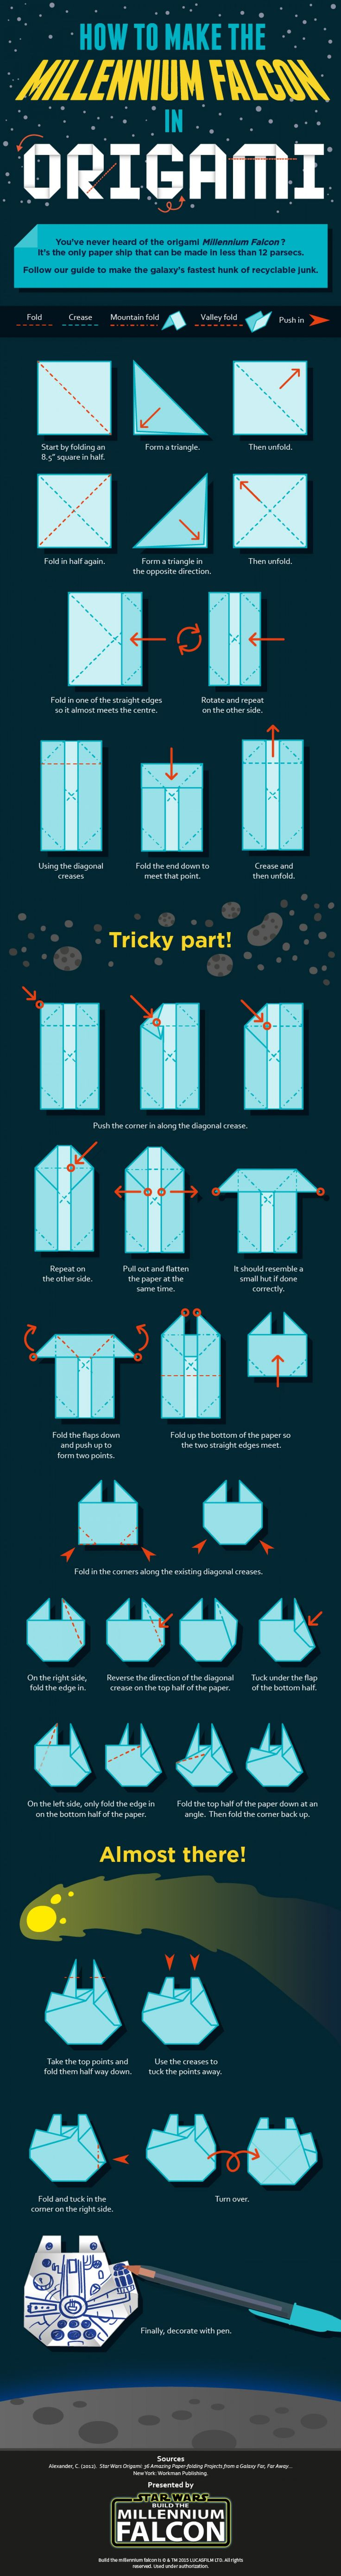 How to Make the Millennium Falcon in Origami Infographic